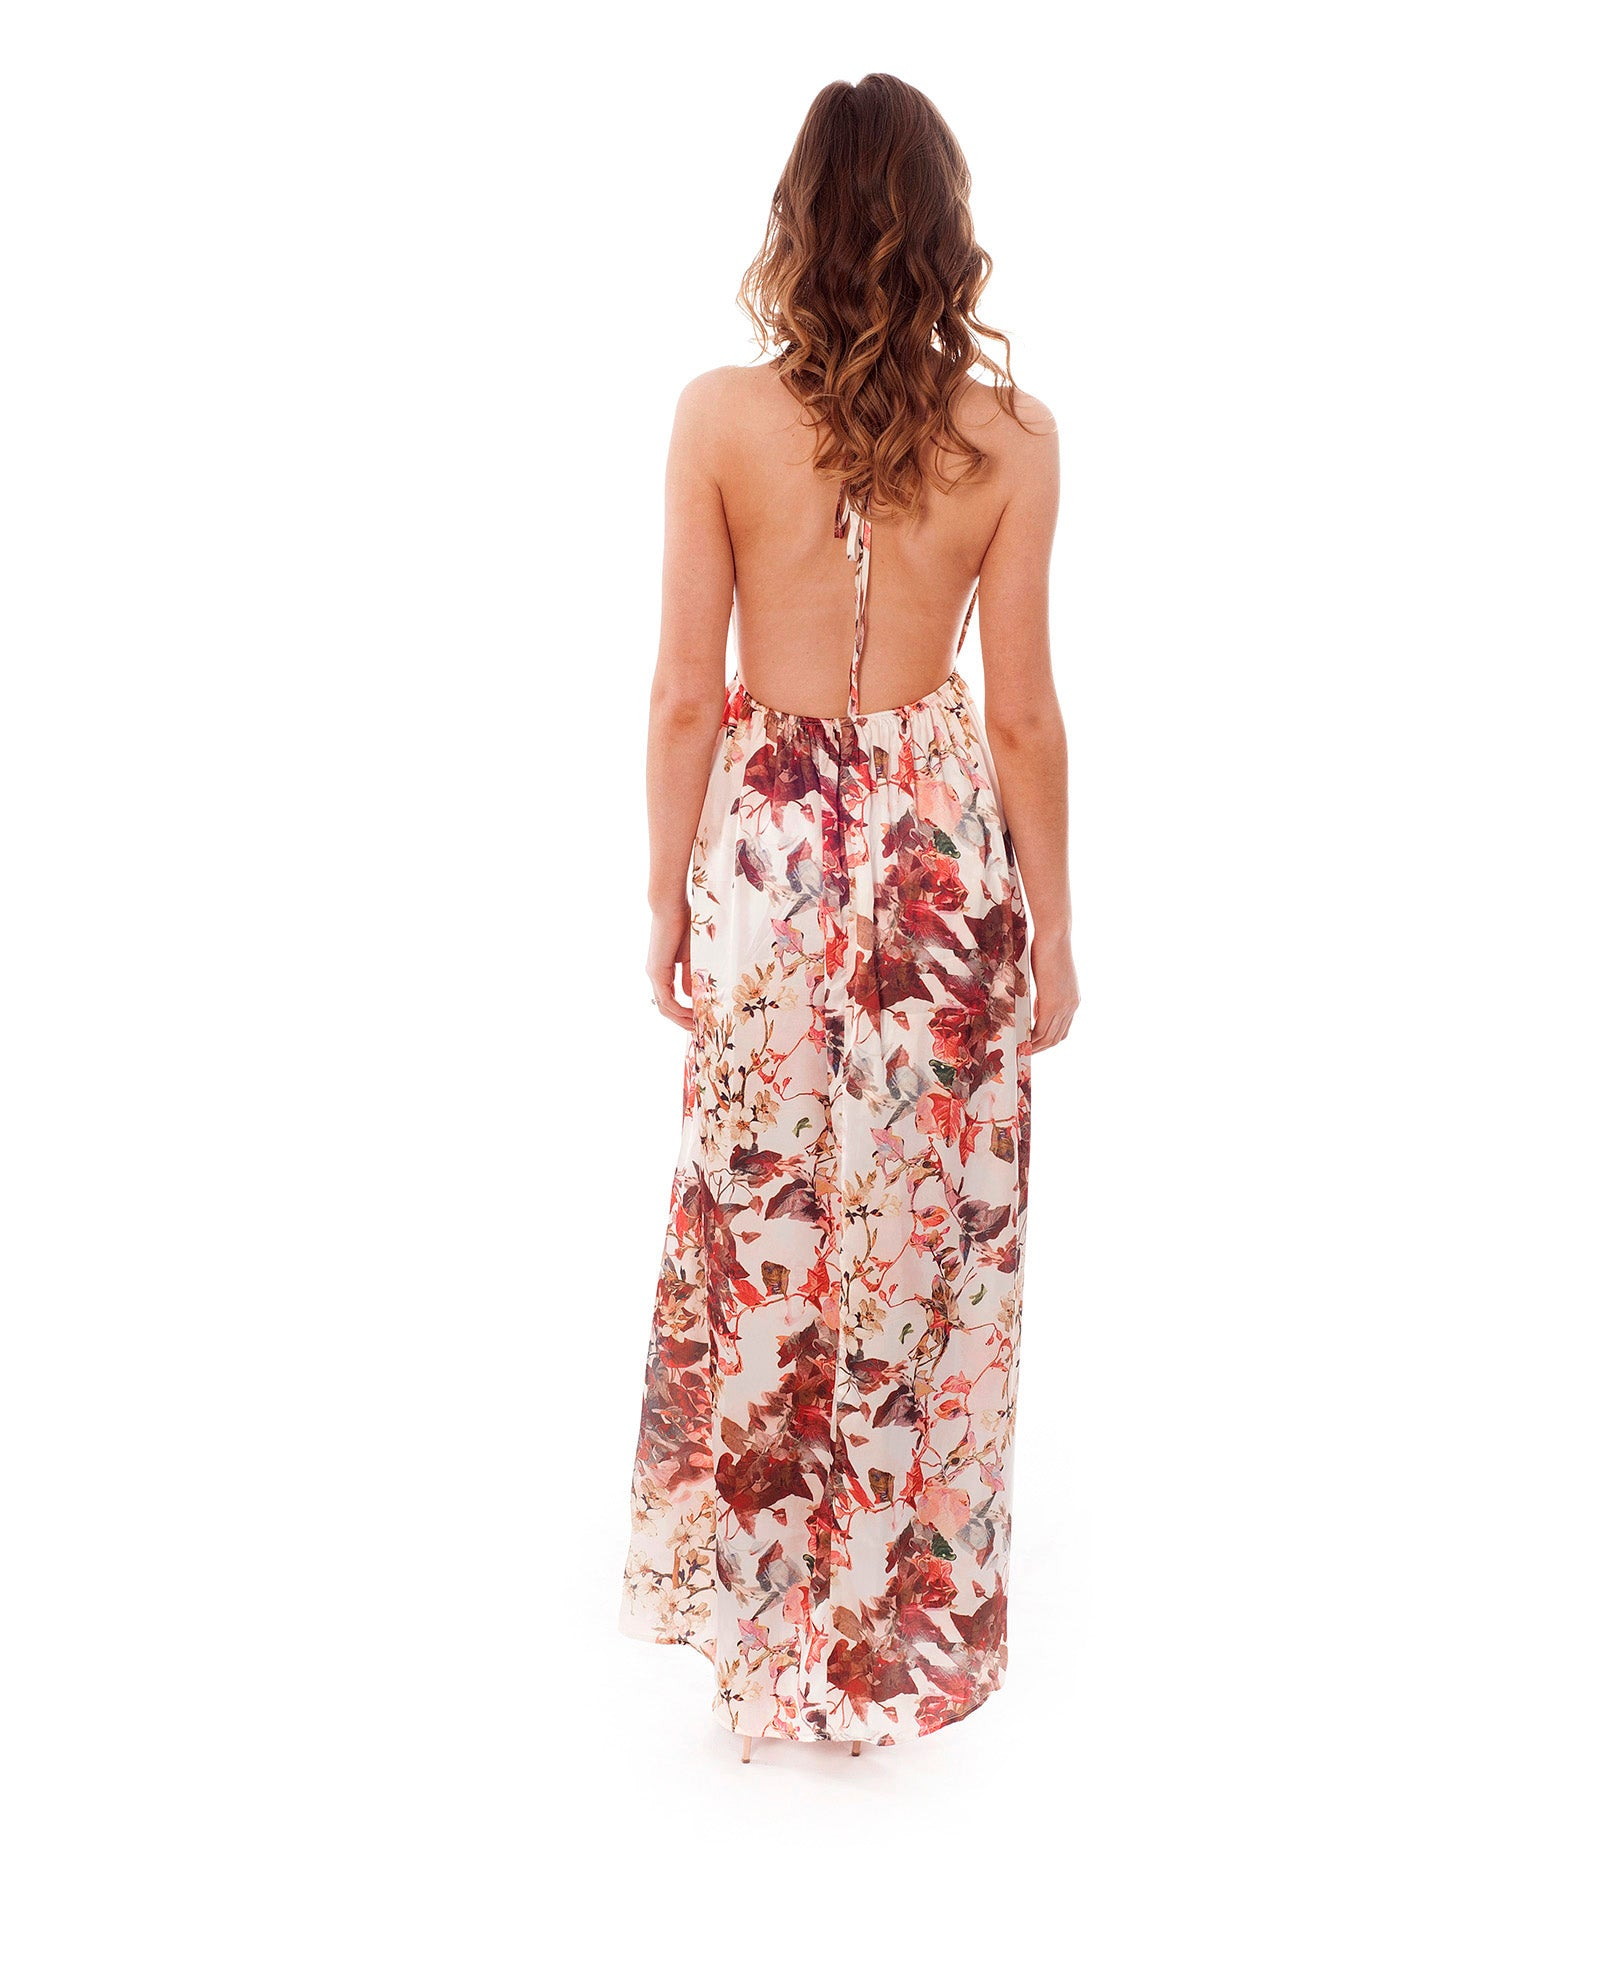 Rent a dress | Floral maxi dress with cross back| Hirestreetuk.com